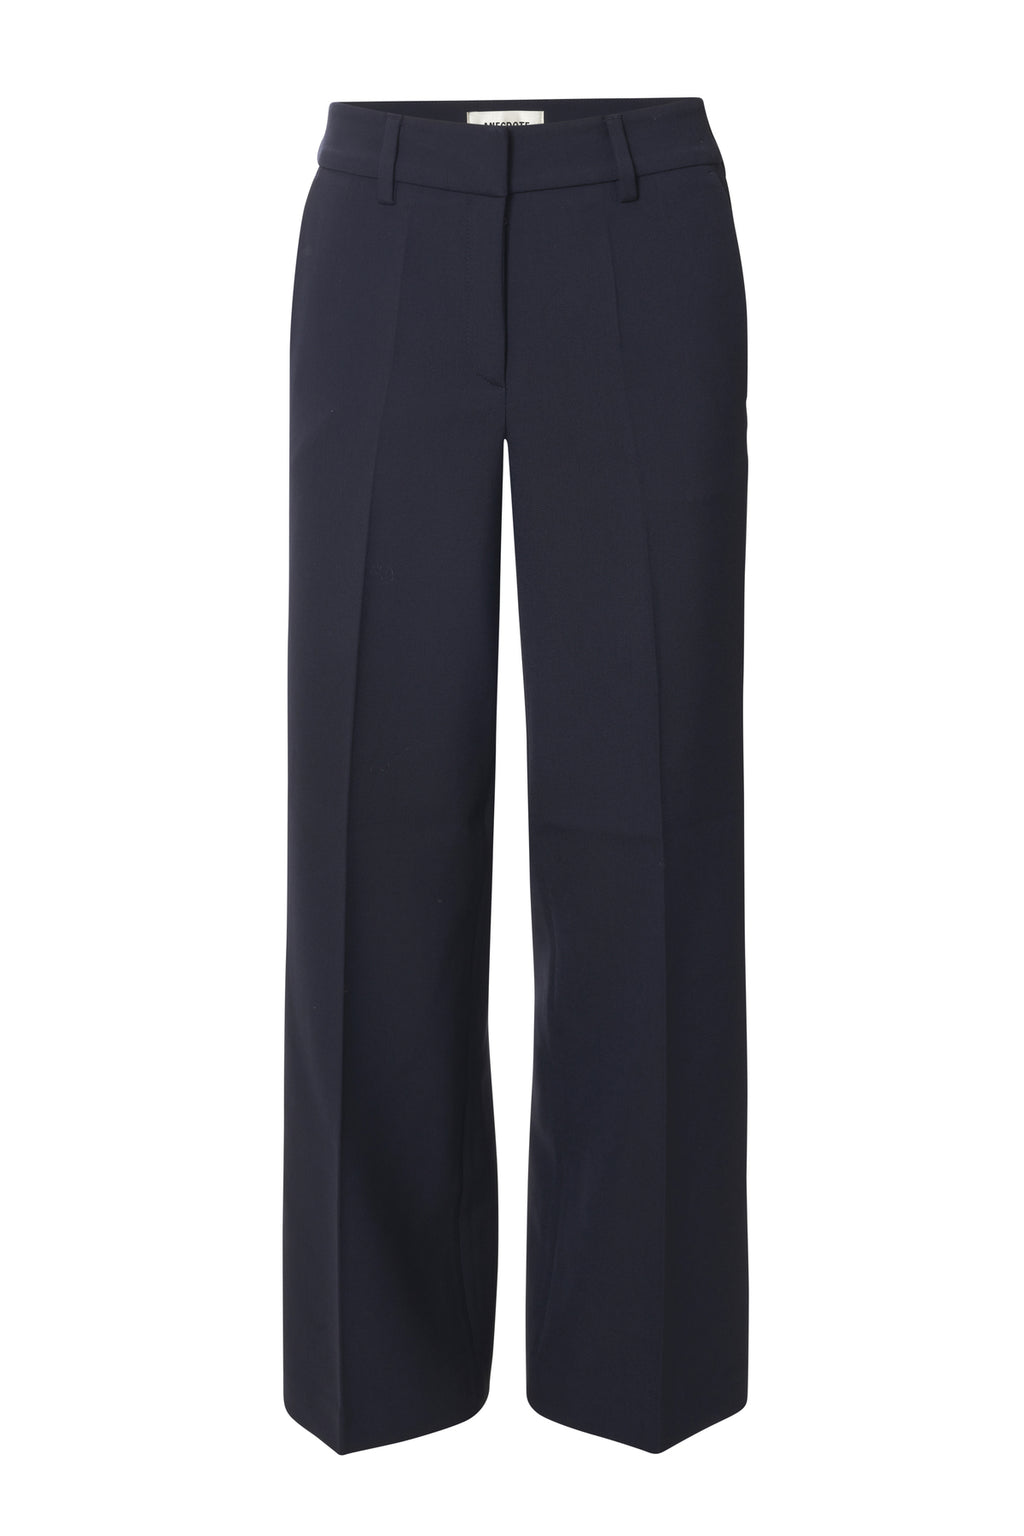 ANECDOTE Carly Pants - Navy